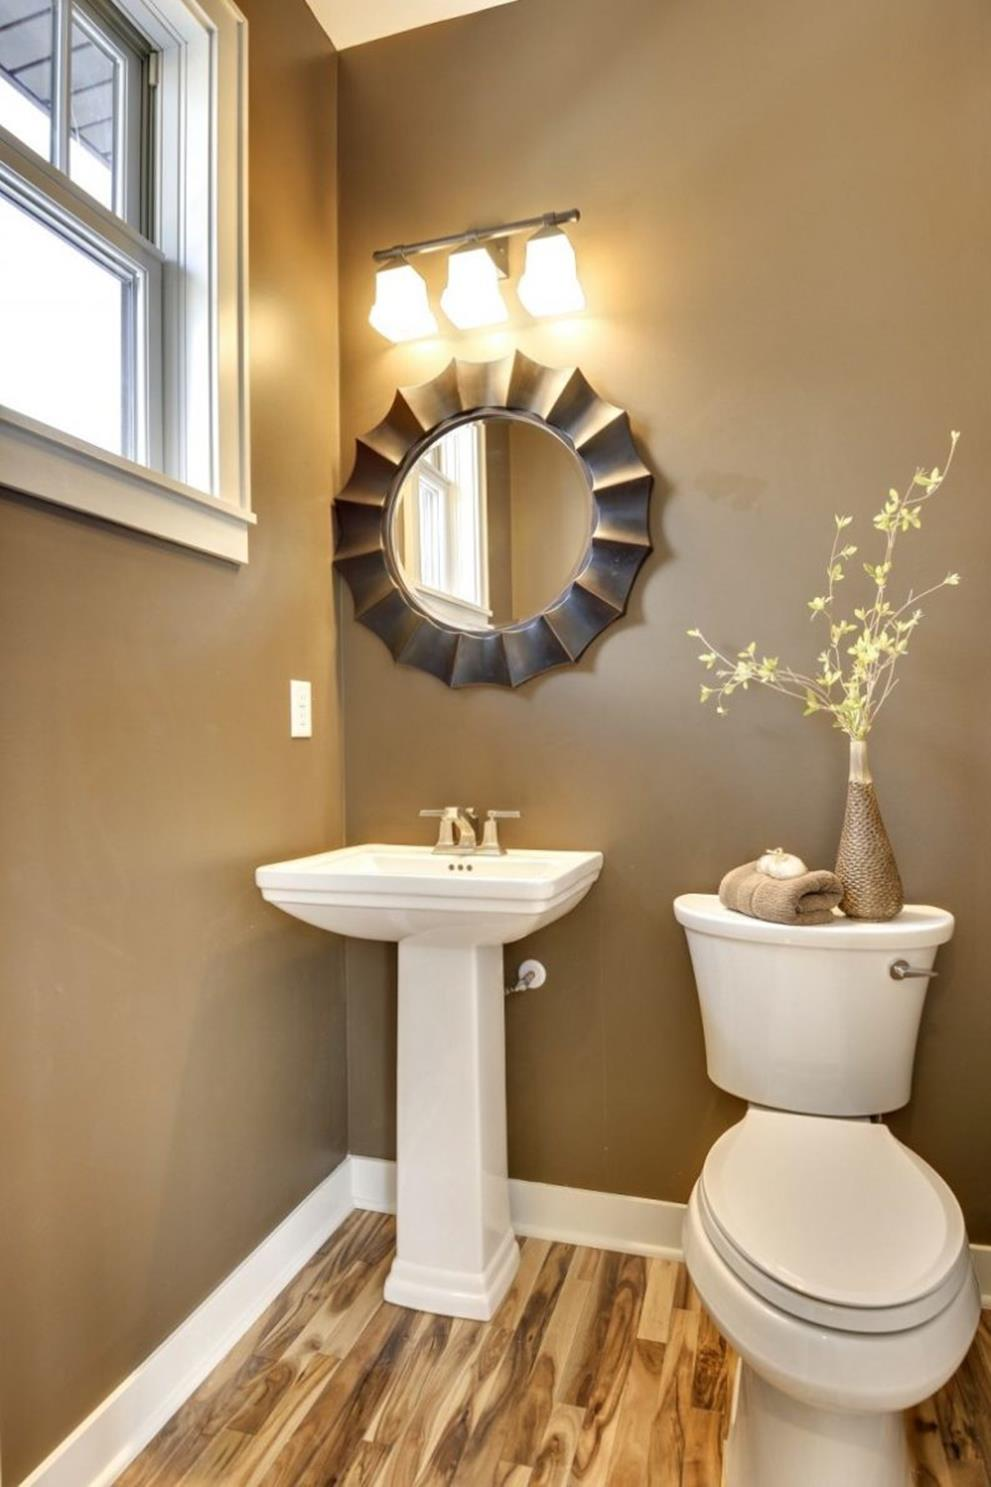 Apartment Bathroom Decorating Ideas On A Budget 27 Gongetech